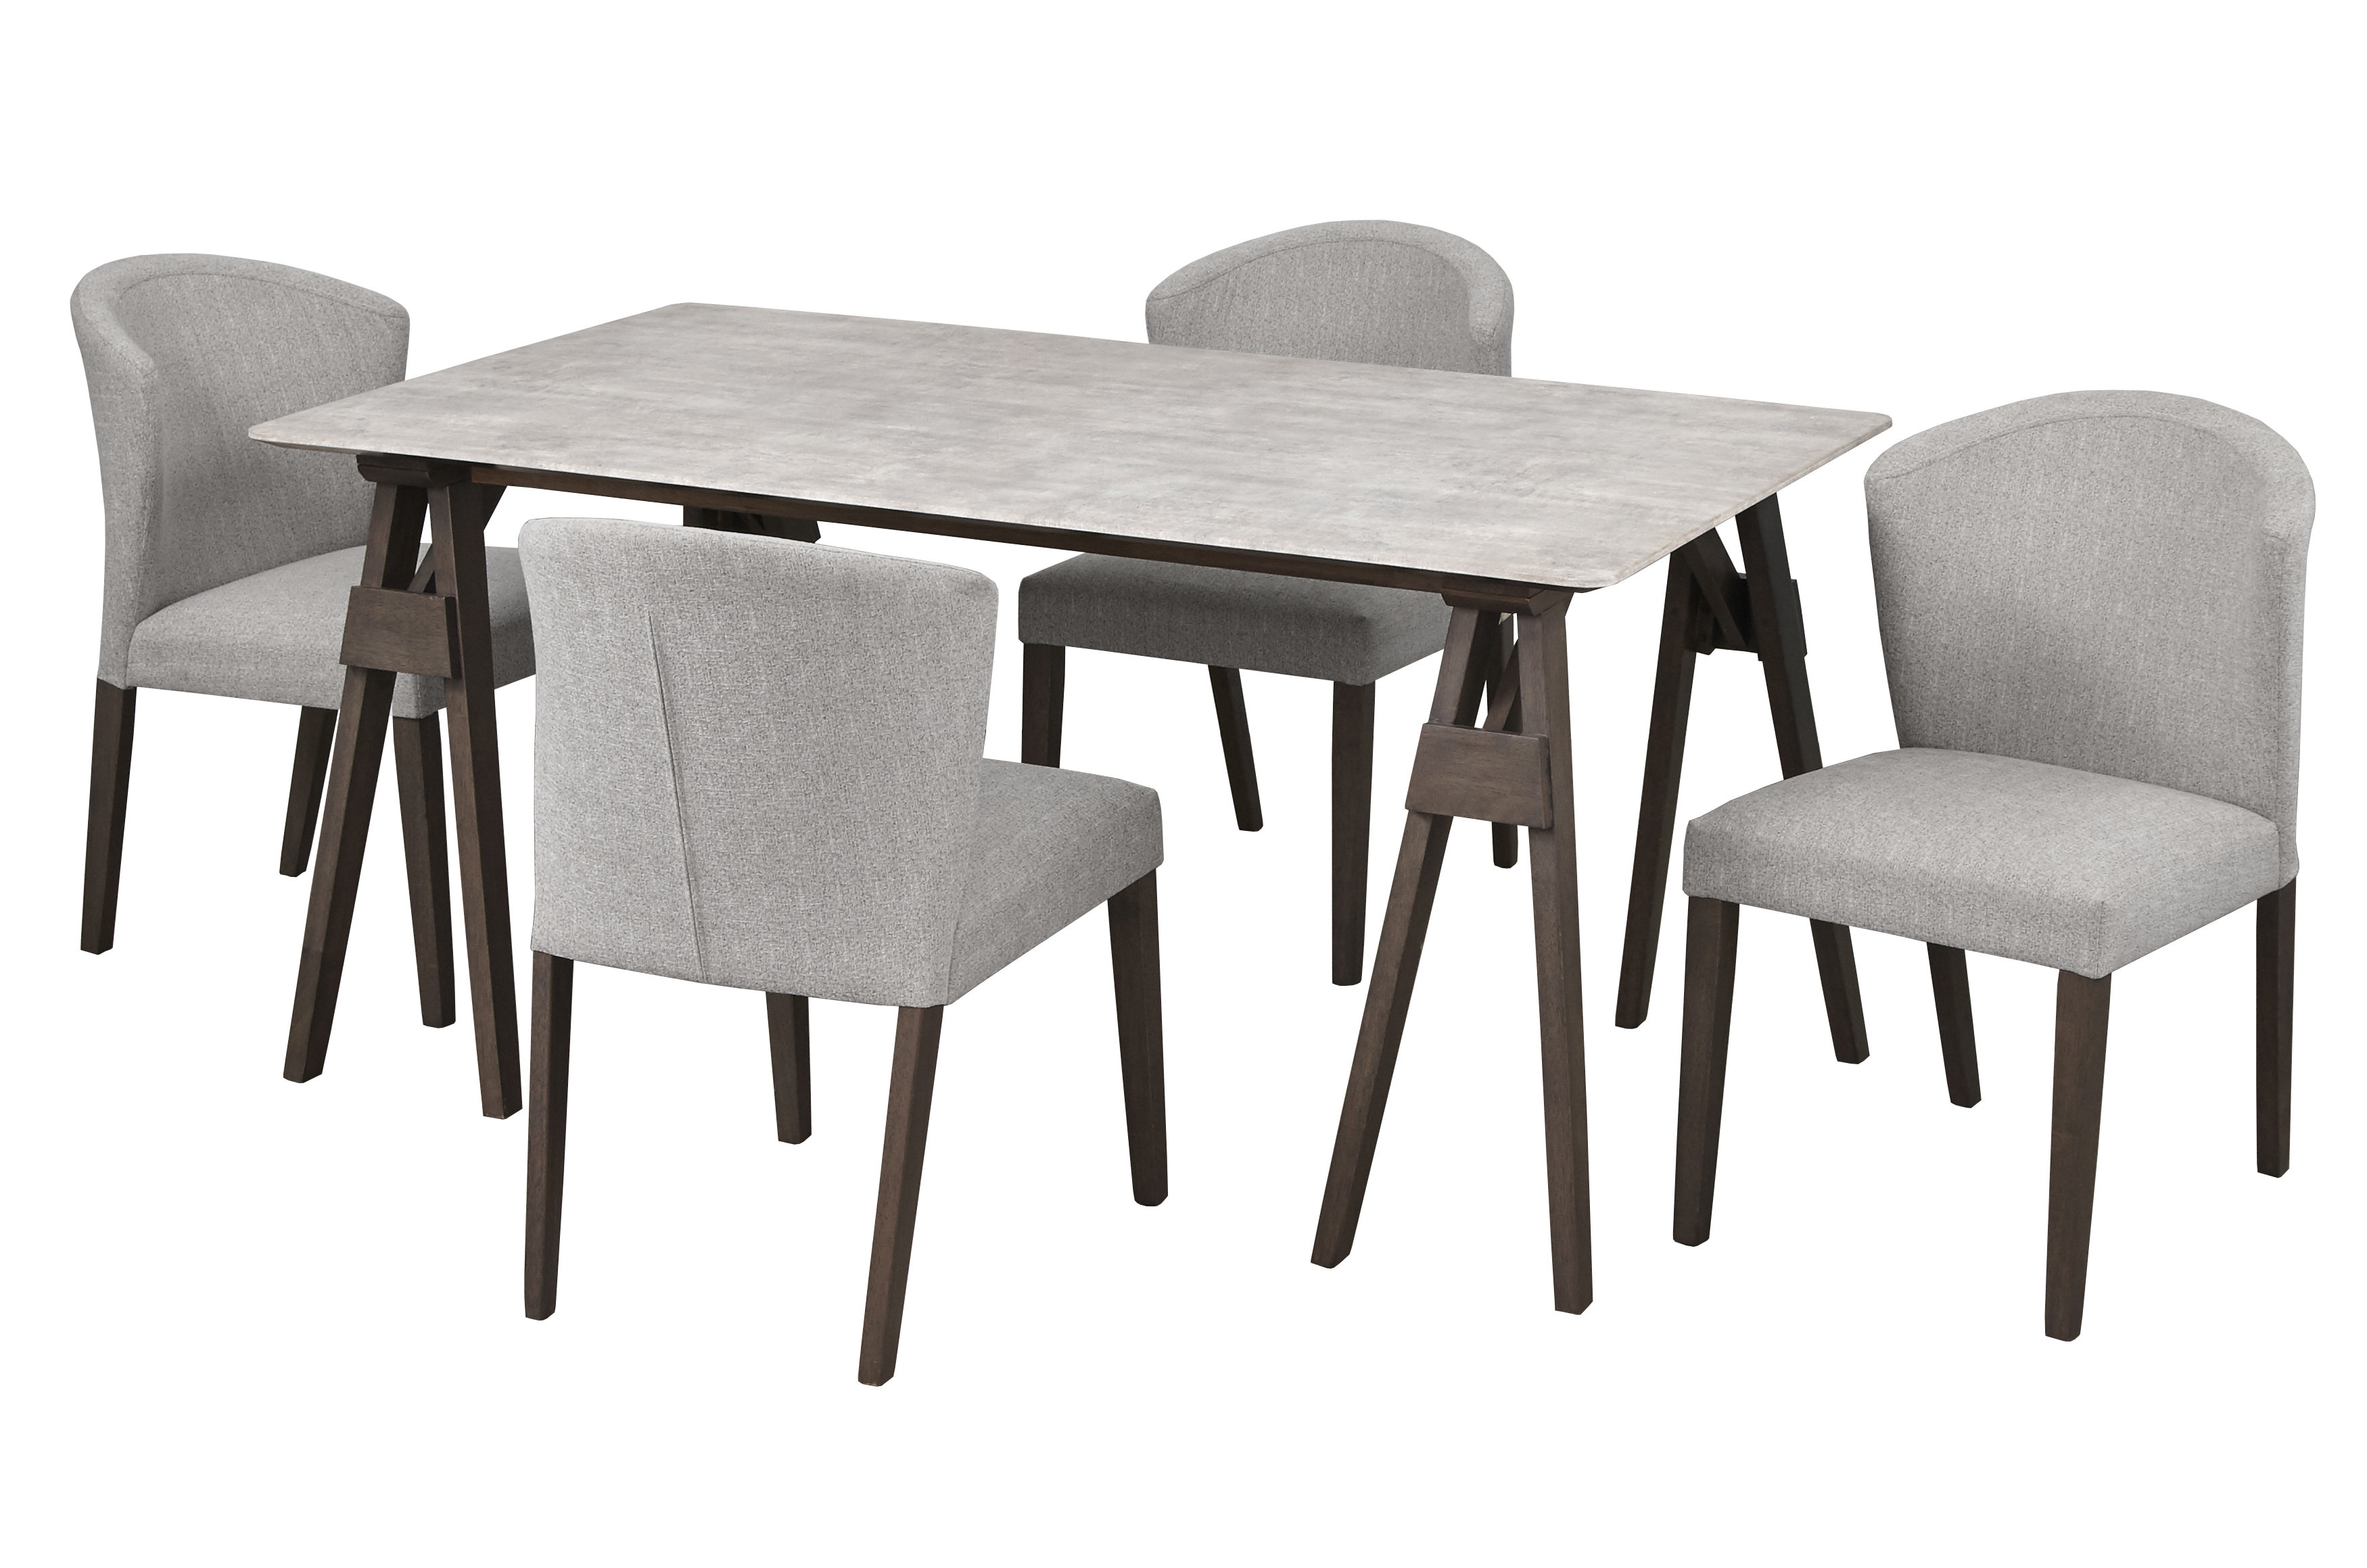 Inspiration about Well Liked Gracie Oaks Macclesfield 5 Piece Solid Wood Dining Set (#12 of 20)